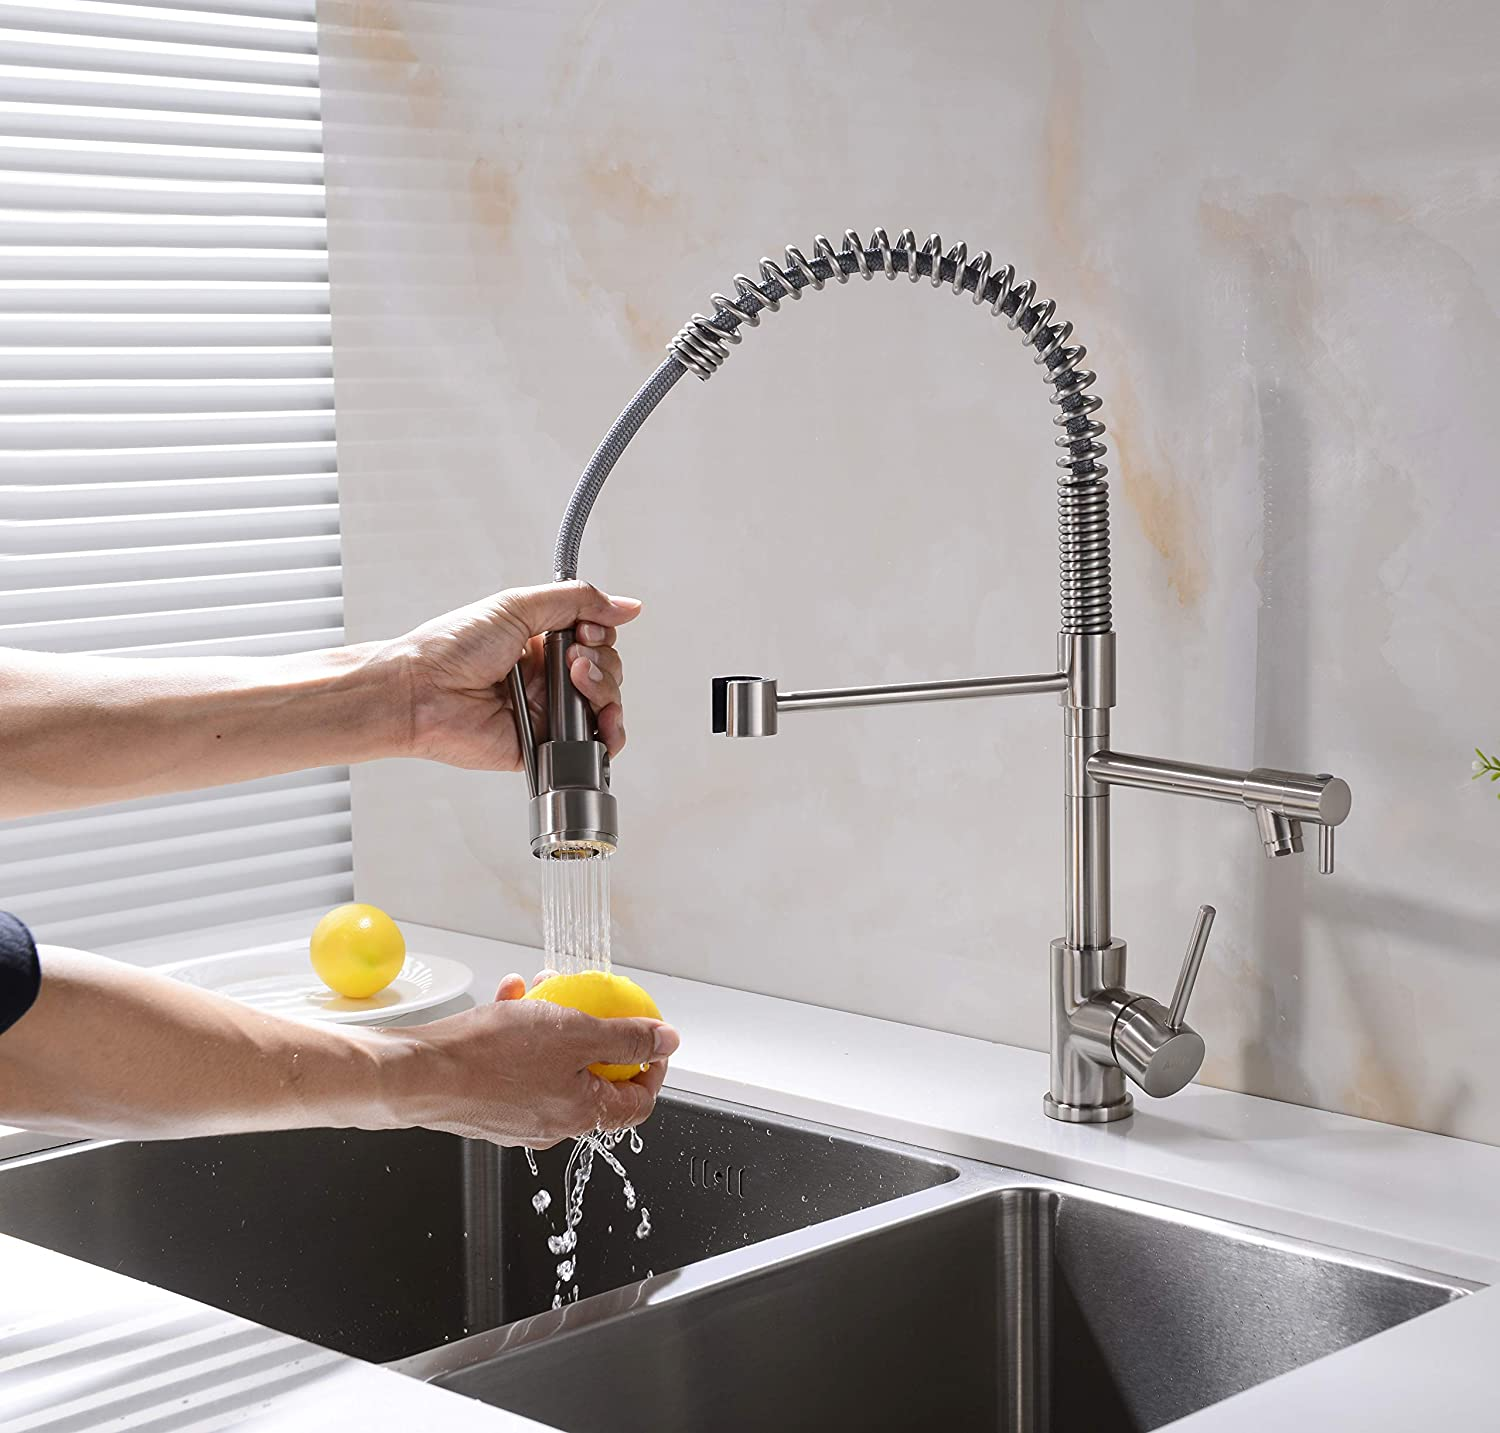 Amazon coupon code for Kitchen Faucet Brushed Nickel